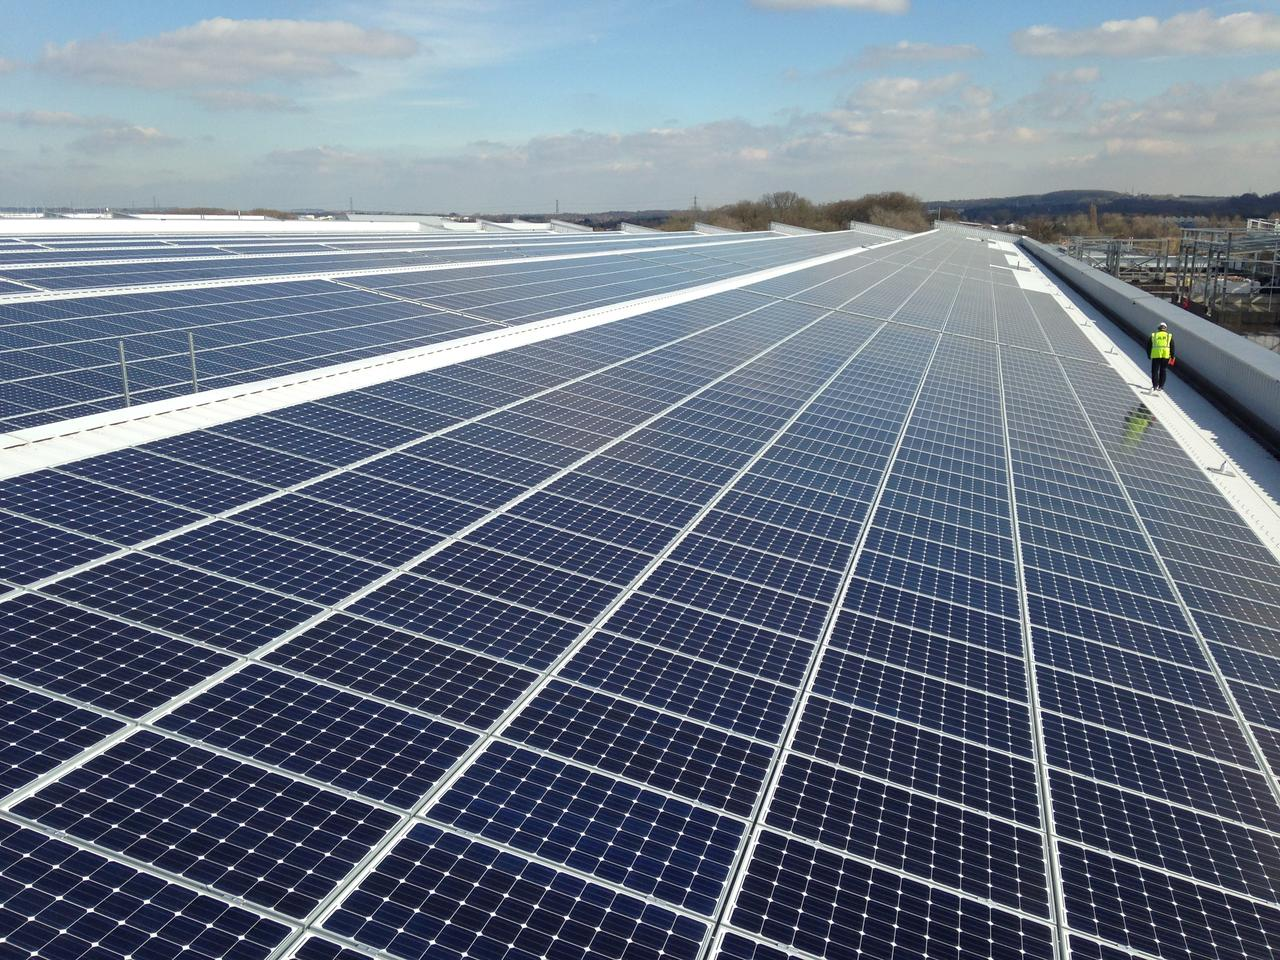 The installation on Jaguar Land Rover's new plant in South Staffordshire is the largest rooftop solar array in the UK